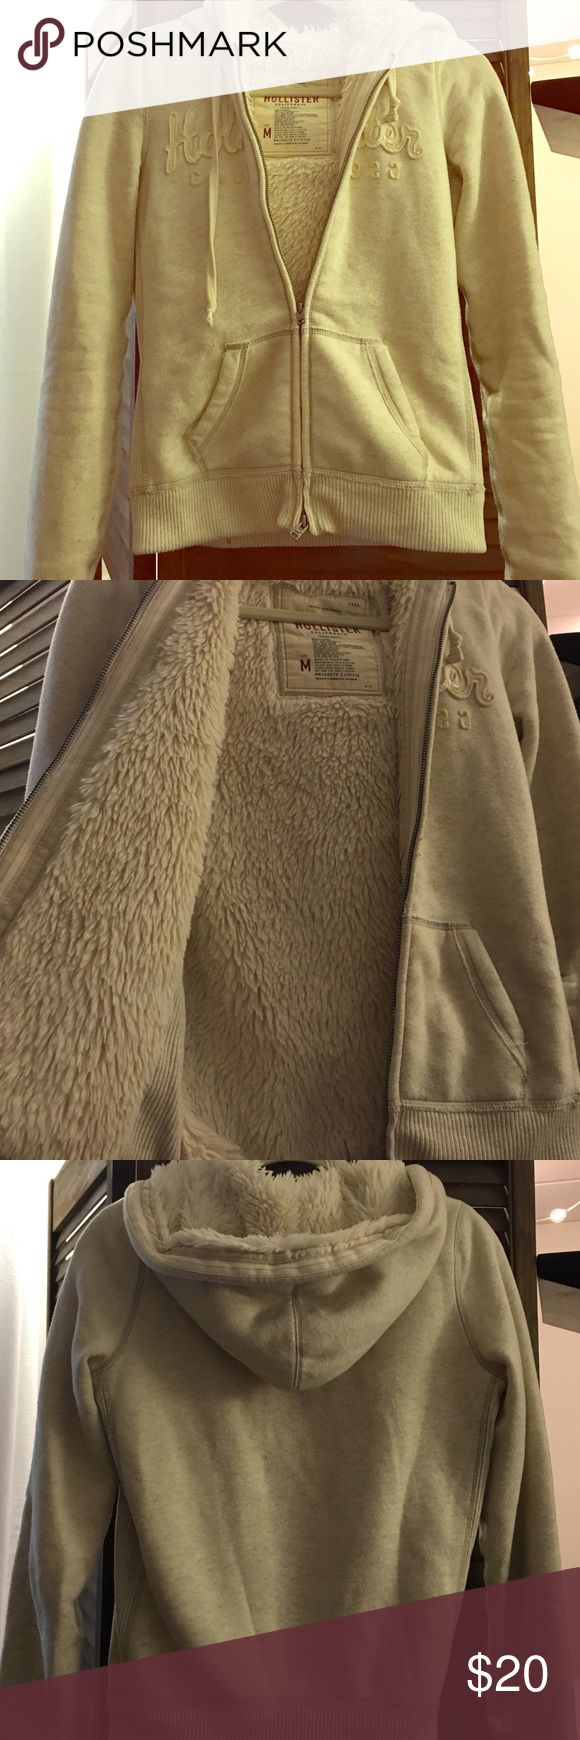 Hollister fur lined zip up hoodie Cream colored fur zip up. Last photo show small little brown spots, just from moving haven't worn more then a handle of times around the house to keep cozy Hollister Sweaters